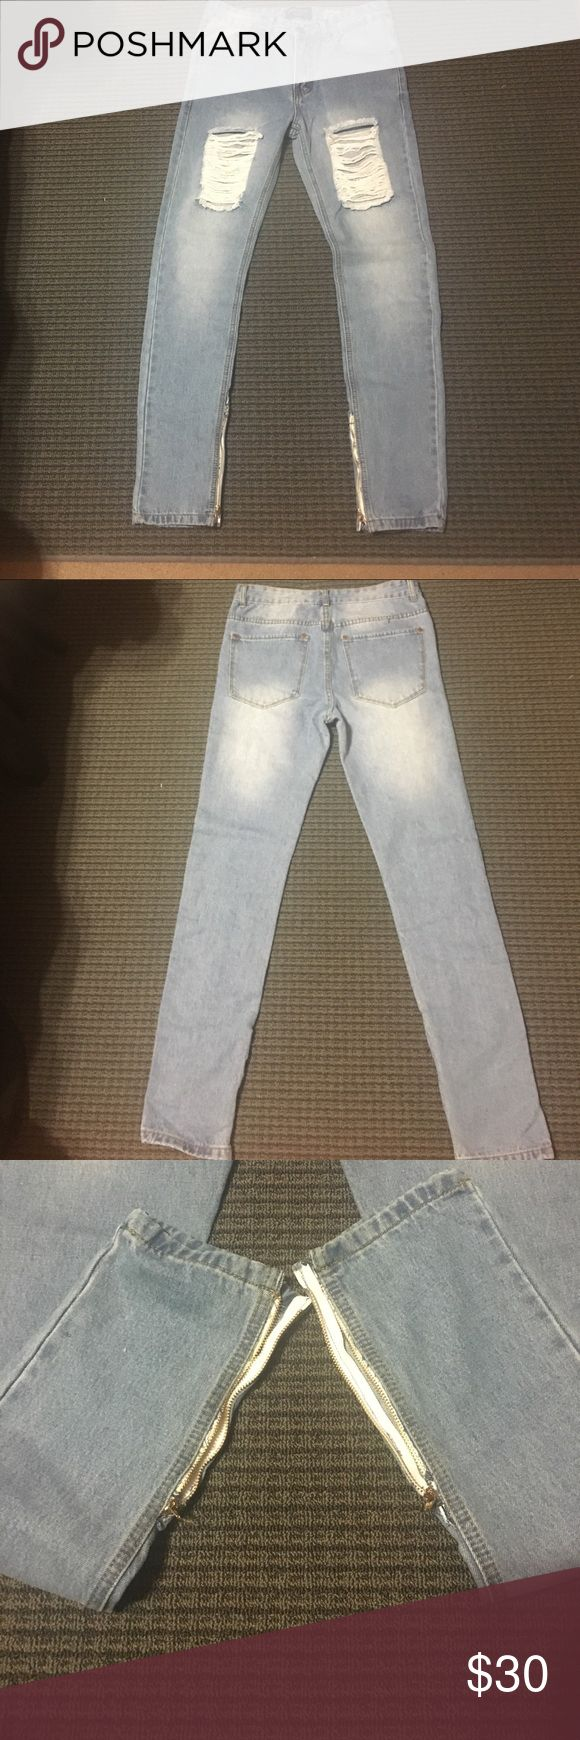 distressed denim jeans A brand new, never worn light wash pair of jeans with added zippers at the hem. Willing to negotiate Boohoo Jeans Skinny